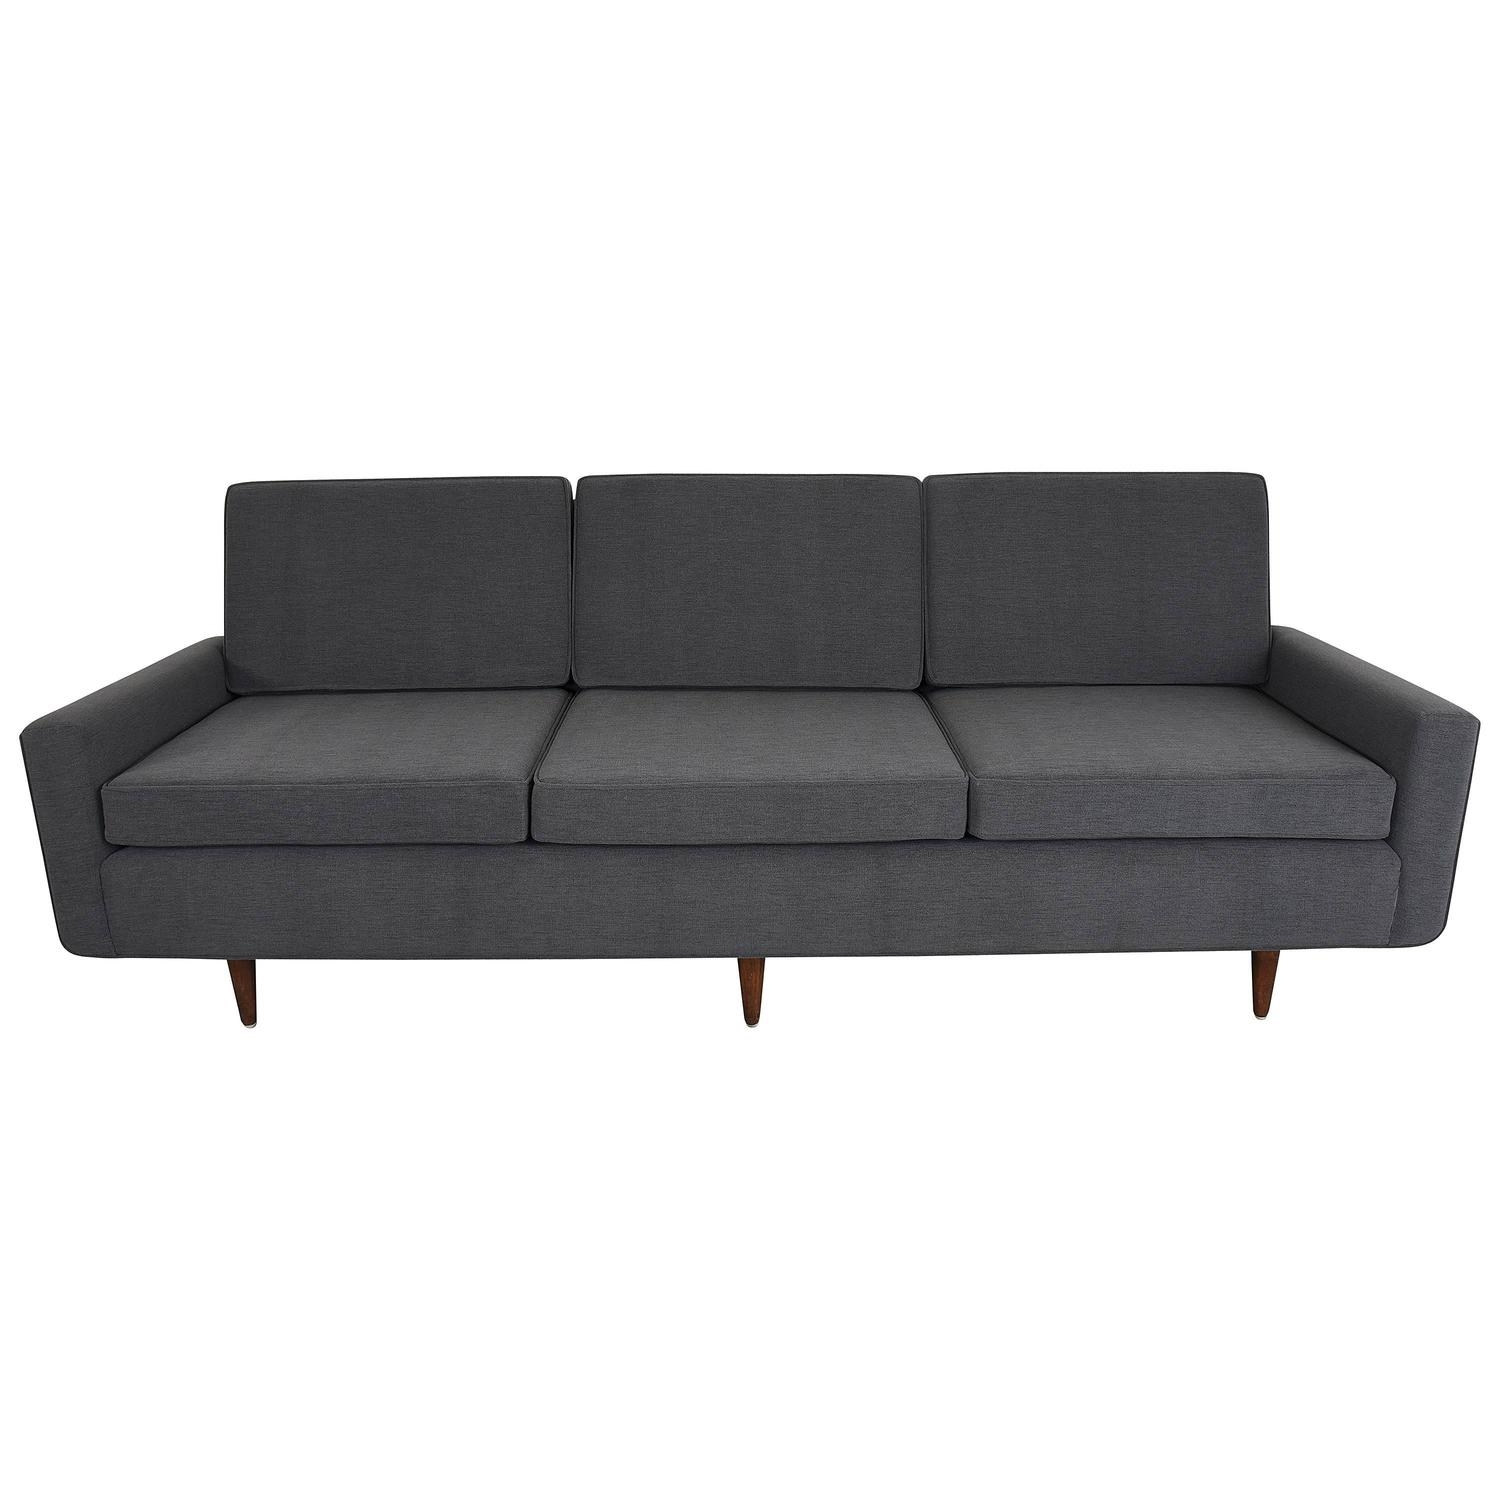 florence knoll sofa review wholesale market in delhi 15 photos leather sofas ideas